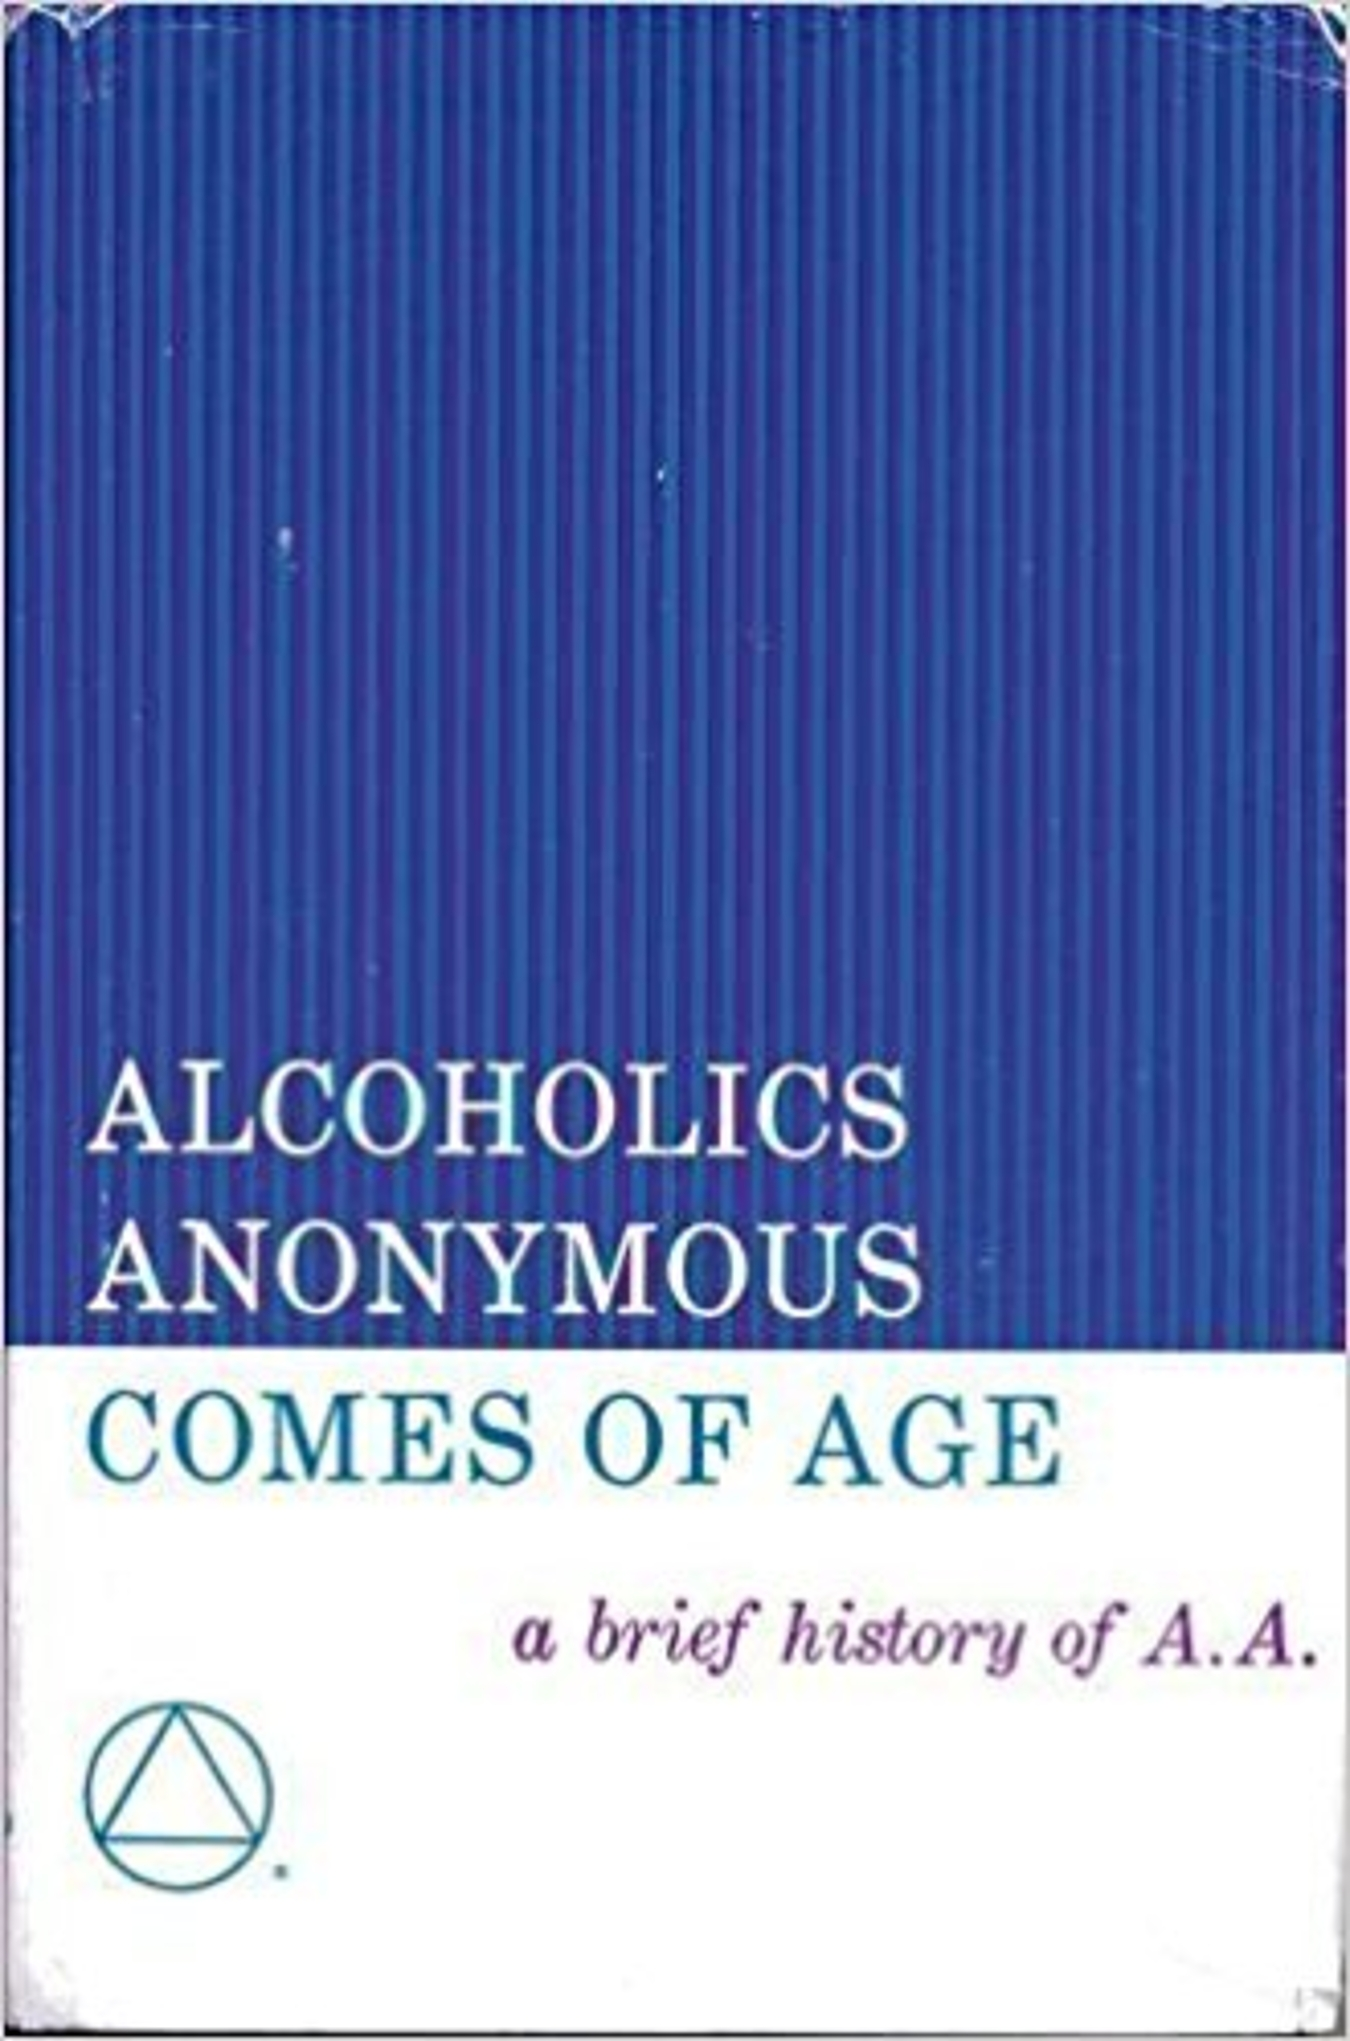 a history of alcoholics anonymous Home archives & history history and resources historical data: the birth of aa and its growth in the us/canada  though the name alcoholics anonymous had not yet been coined, these three men actually made up the nucleus of the first aa group in the fall of 1935, a second group of alcoholics slowly took shape in new york.